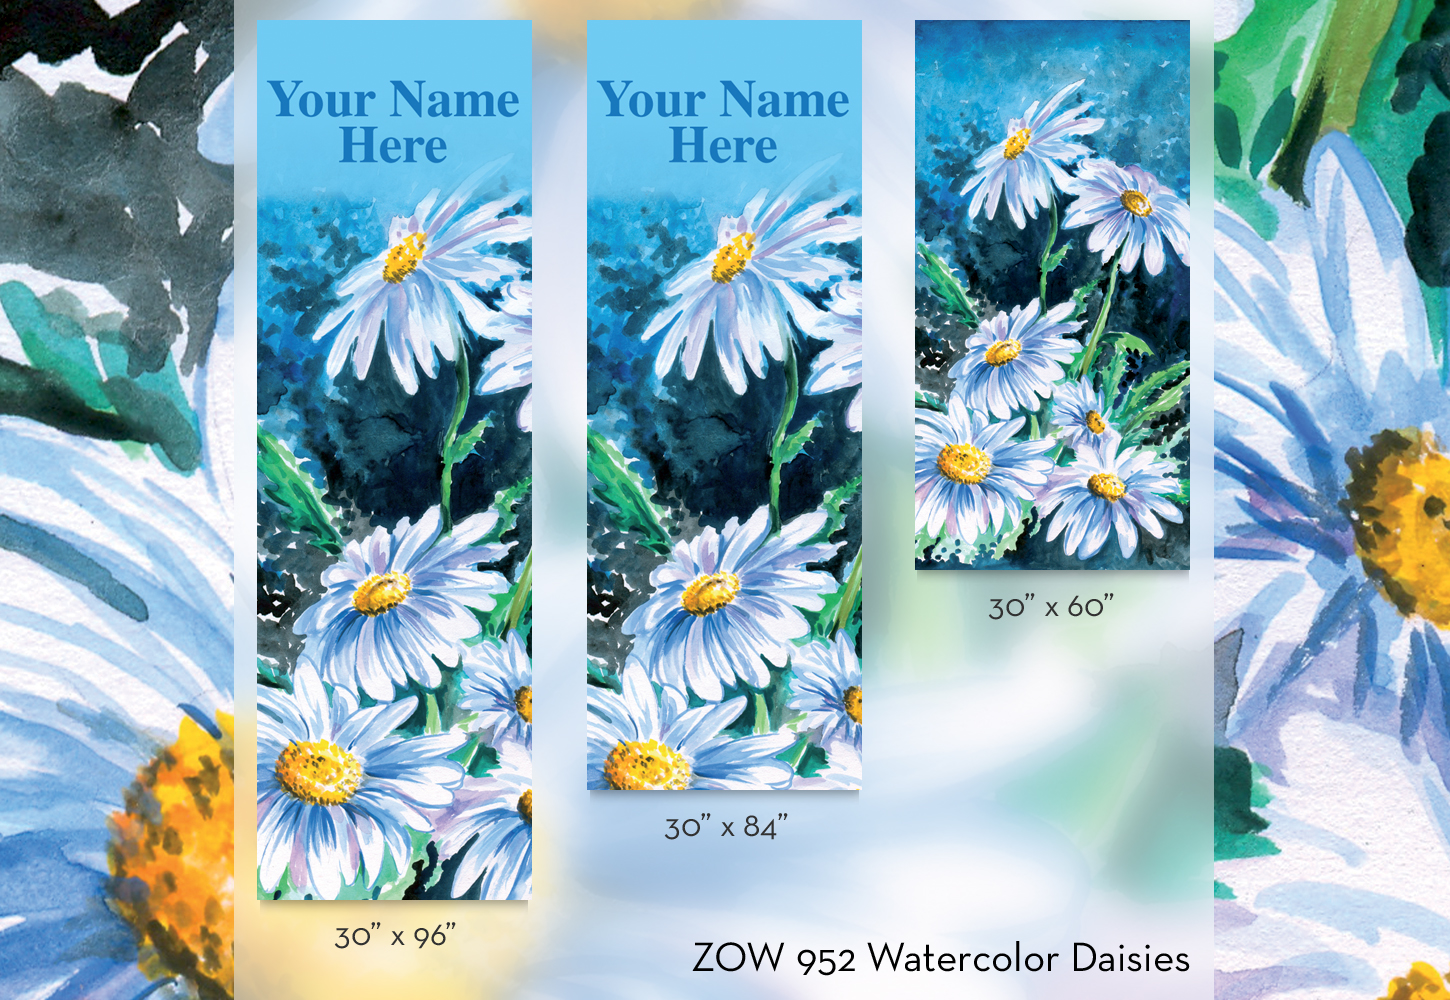 ZOW 952 Watercolor Daisies